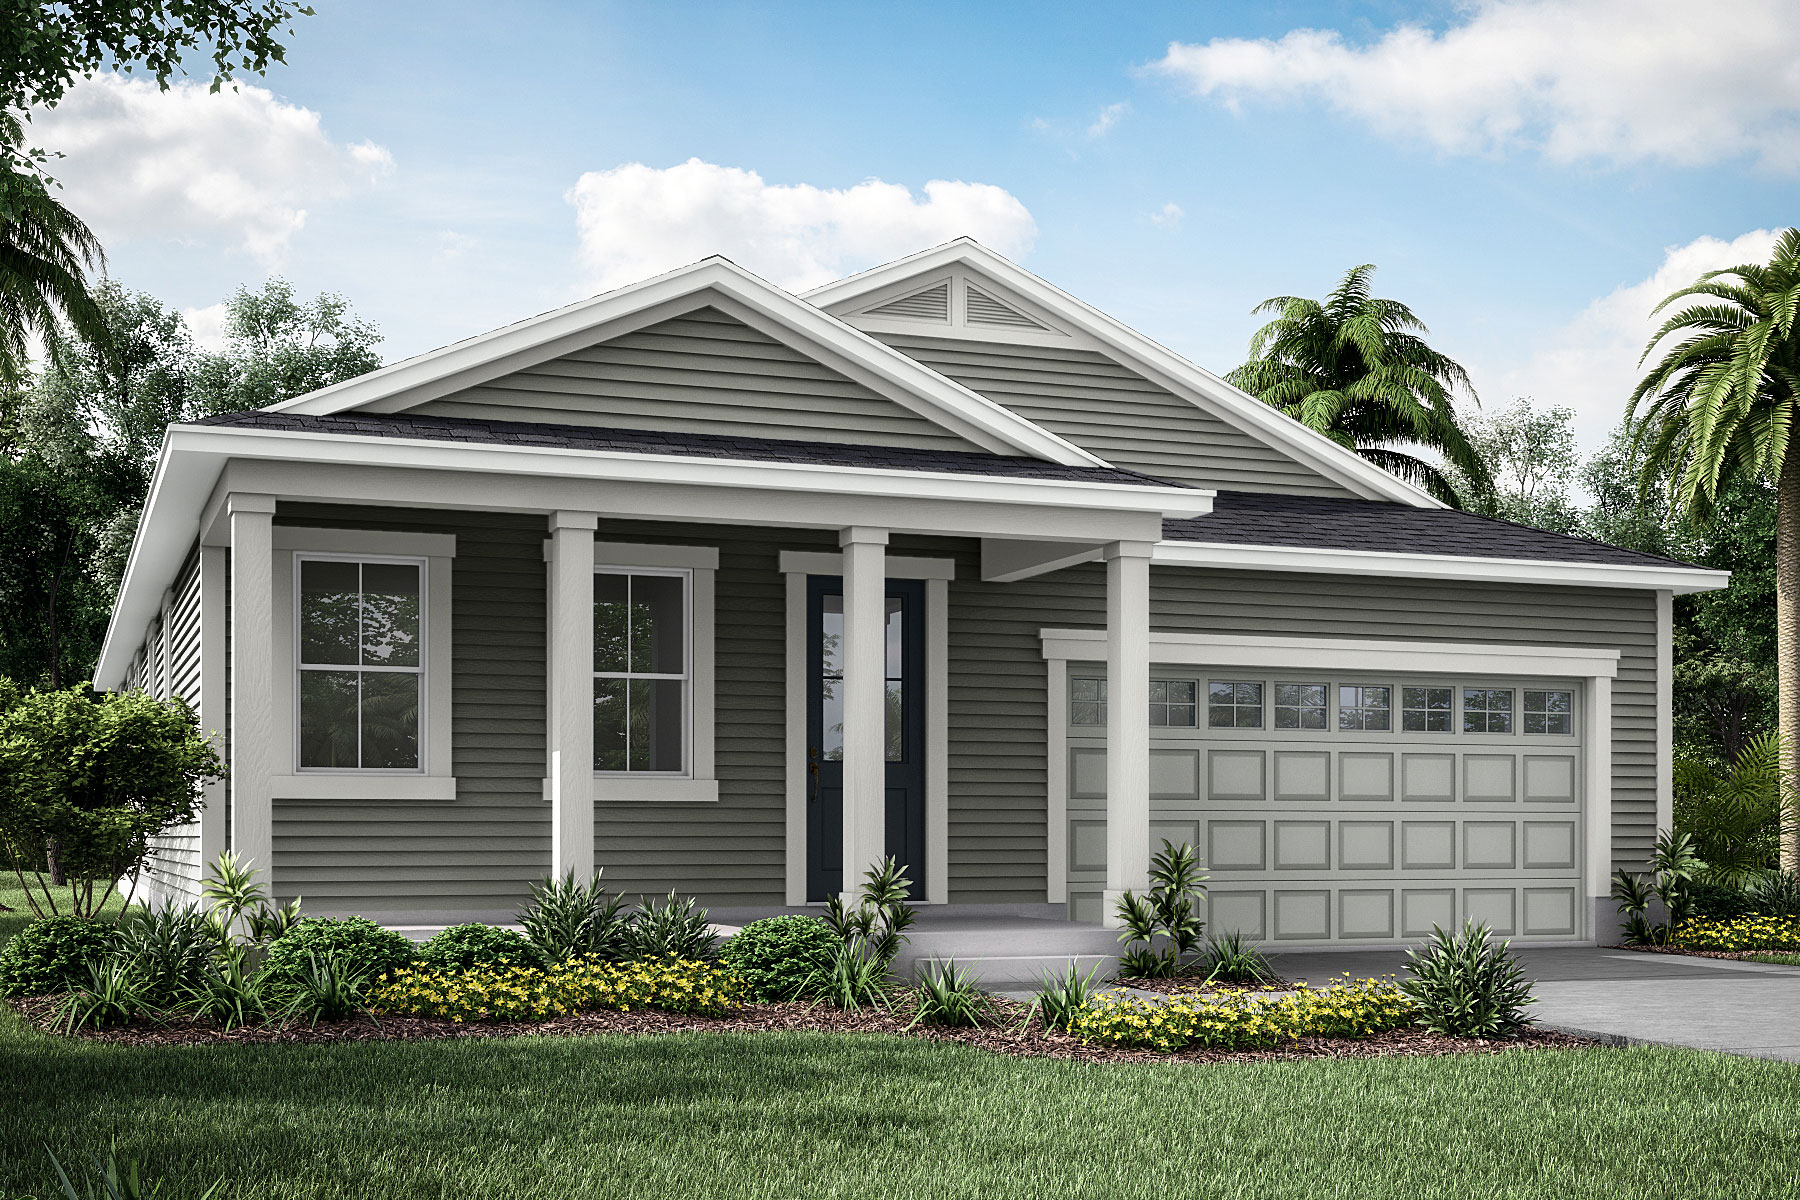 Elm Plan JAX_Wildlight_Elm_LowCountry at Forest Park at Wildlight in Yulee Florida by Mattamy Homes